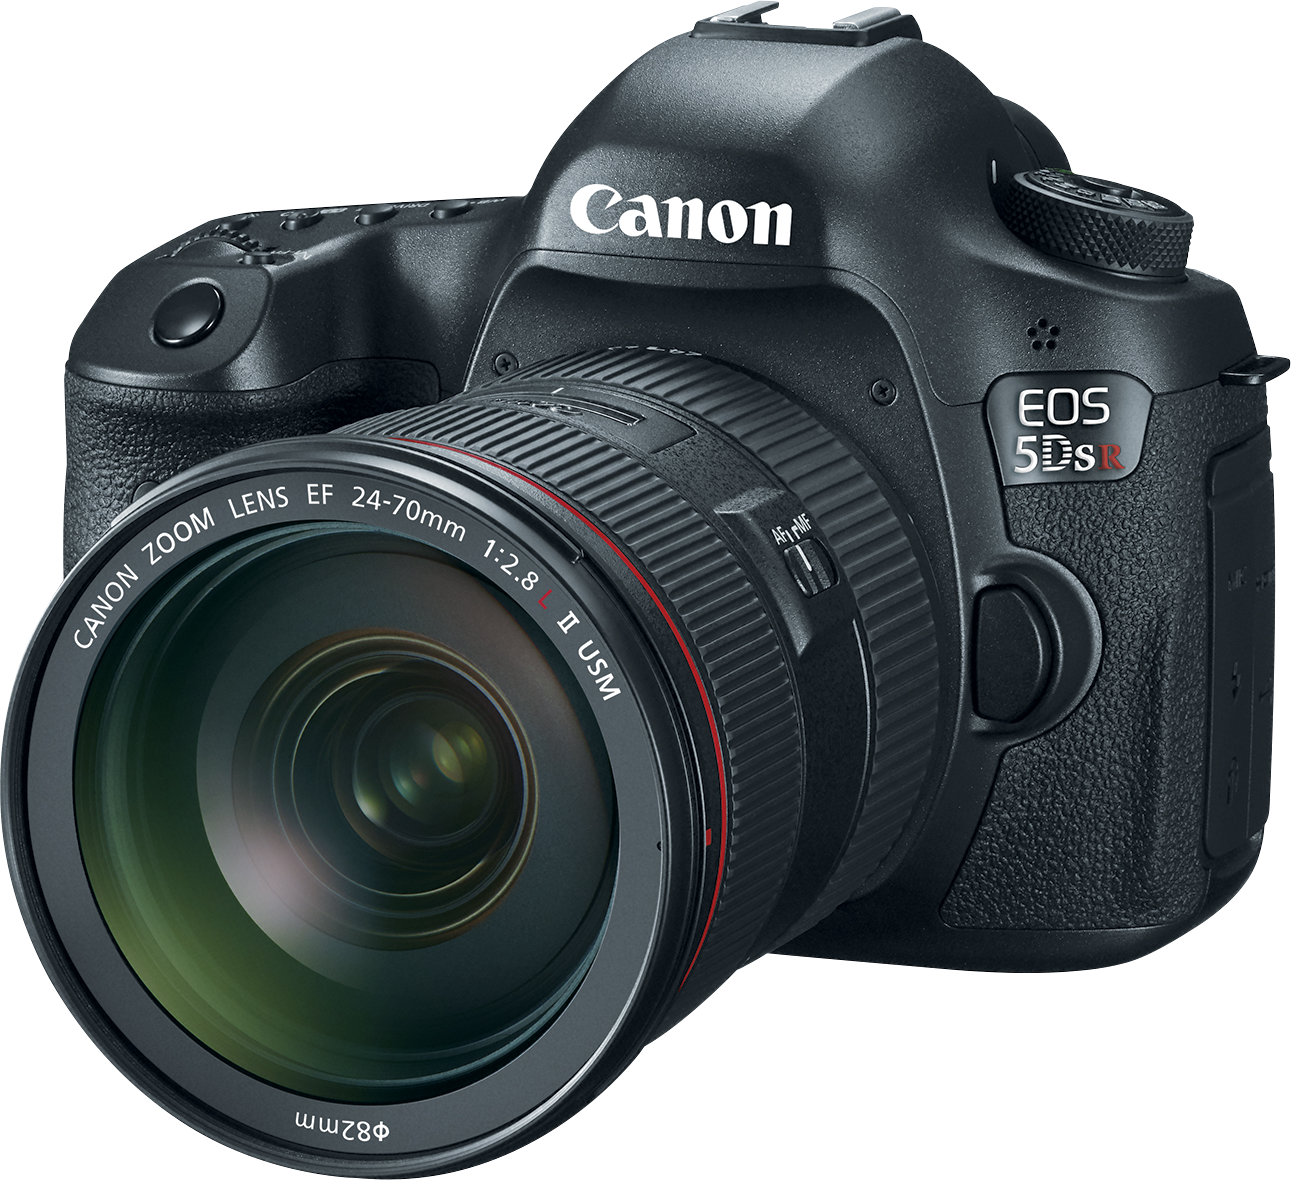 The Canon 80D is Targeting the Semi-Professional Photographer